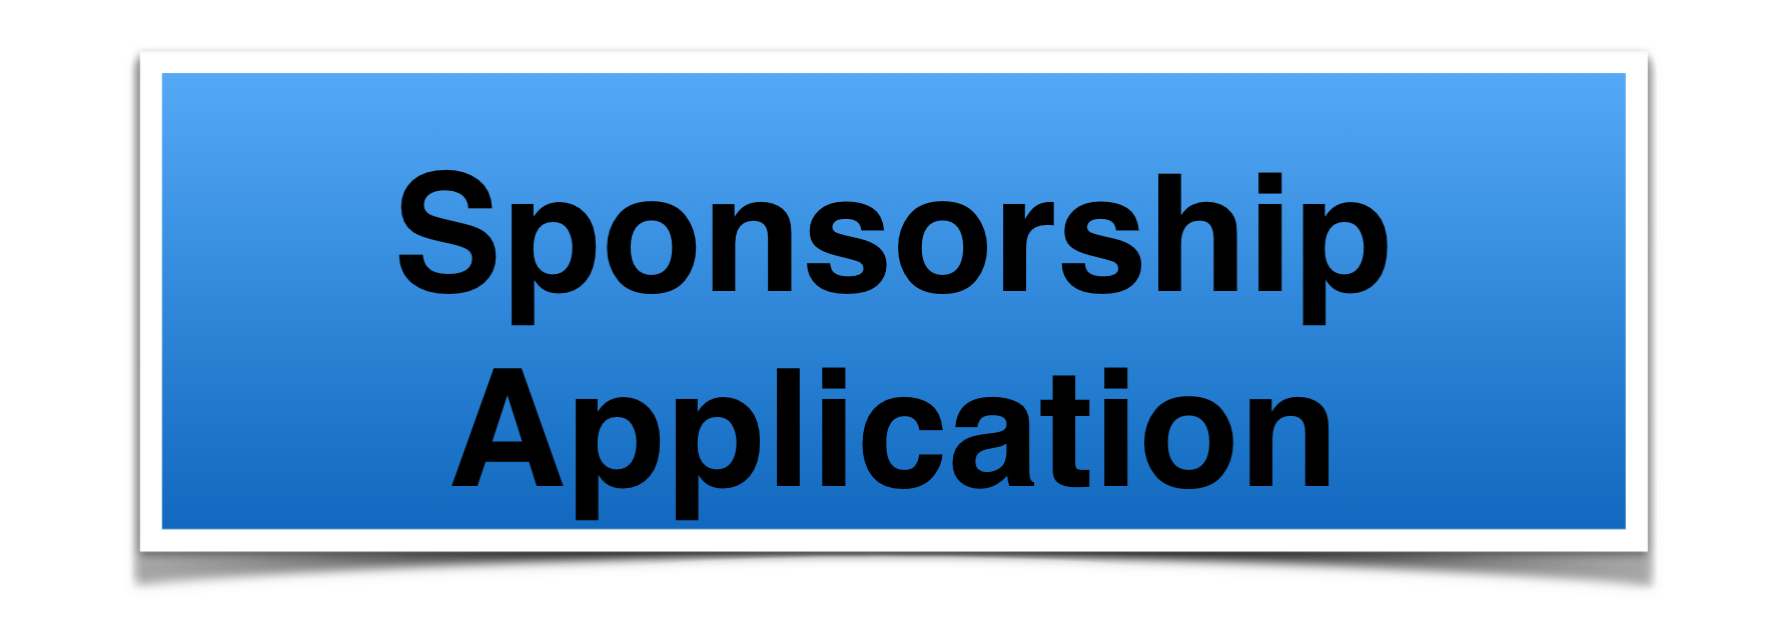 EdCamp Garland Sponsorship Application